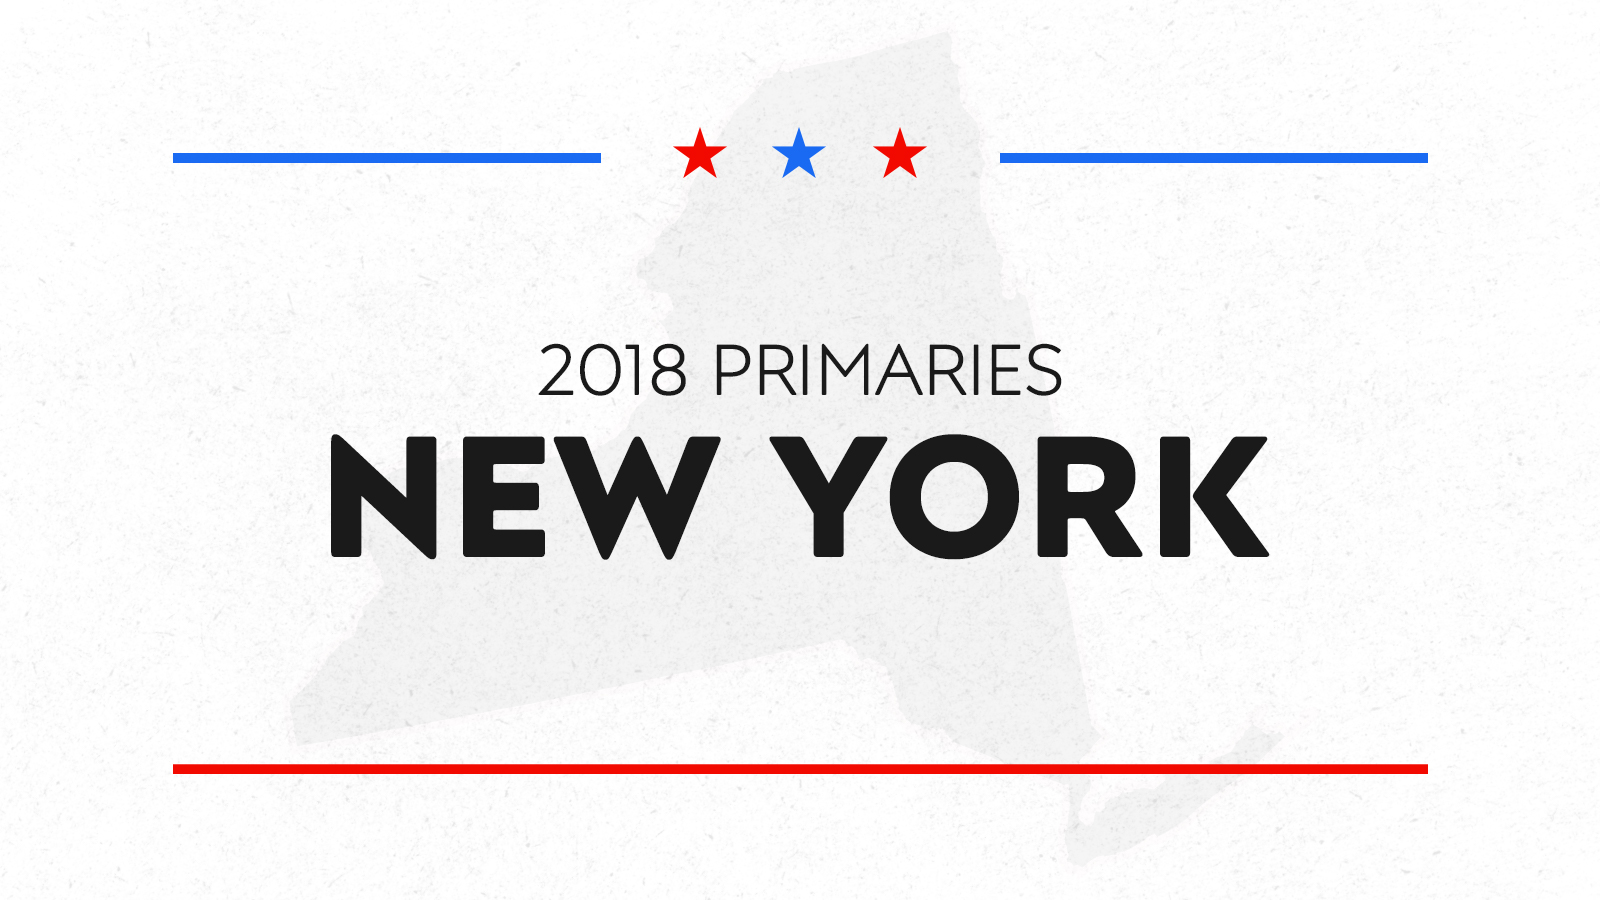 New York Primary Election